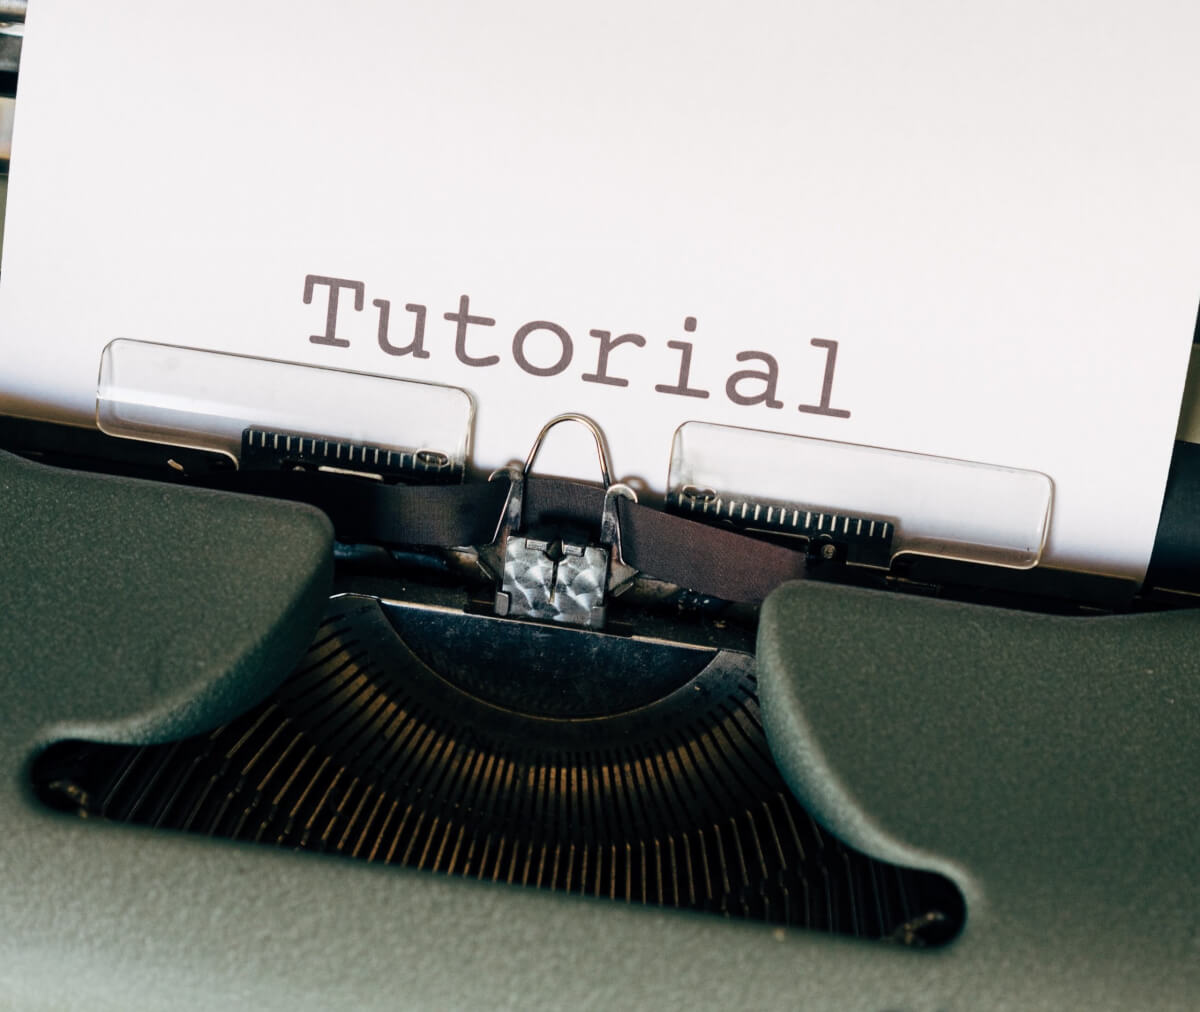 tutorials can lead to increased awareness of your product of service